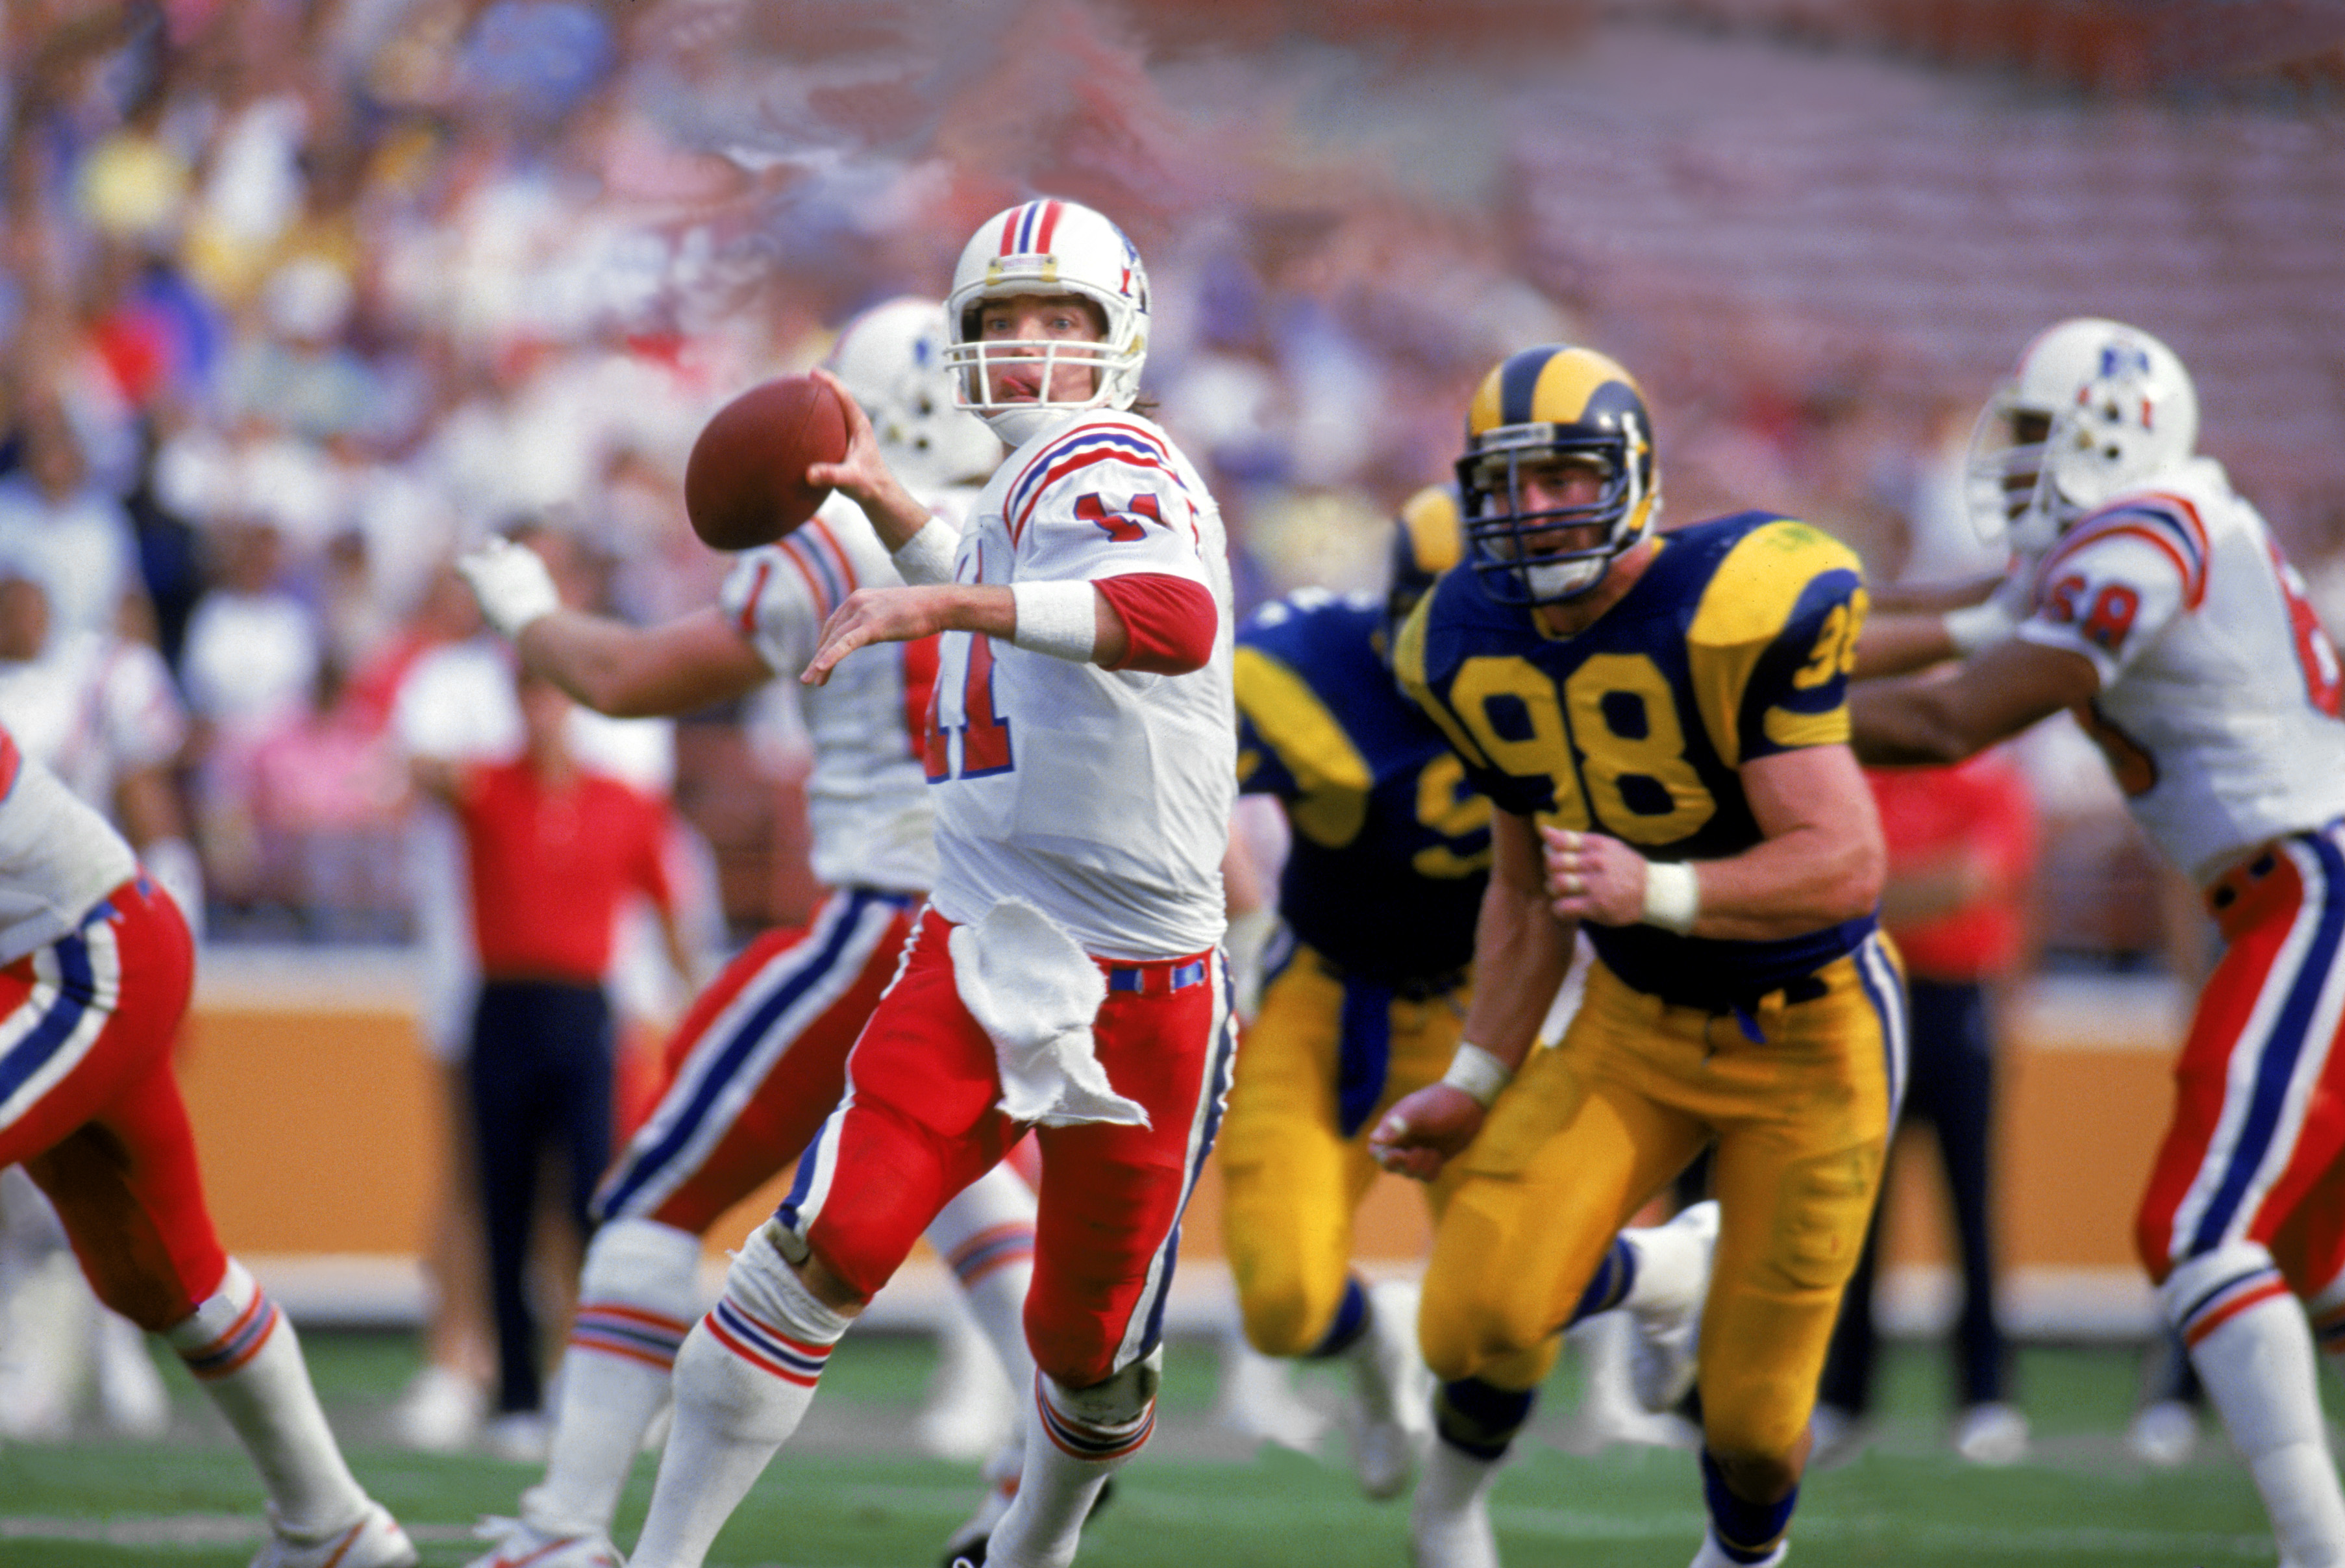 LOS ANGELES - 1986:  Quarterback Tony Eason #11 of the New England Patriots rolls out under pressure during a 1986 NFL game against the Los Angeles Rams at LA Memorial Coliseum in Los Angeles, California.  The Pats defeated the Rams 30-28.  (Photo by Tony